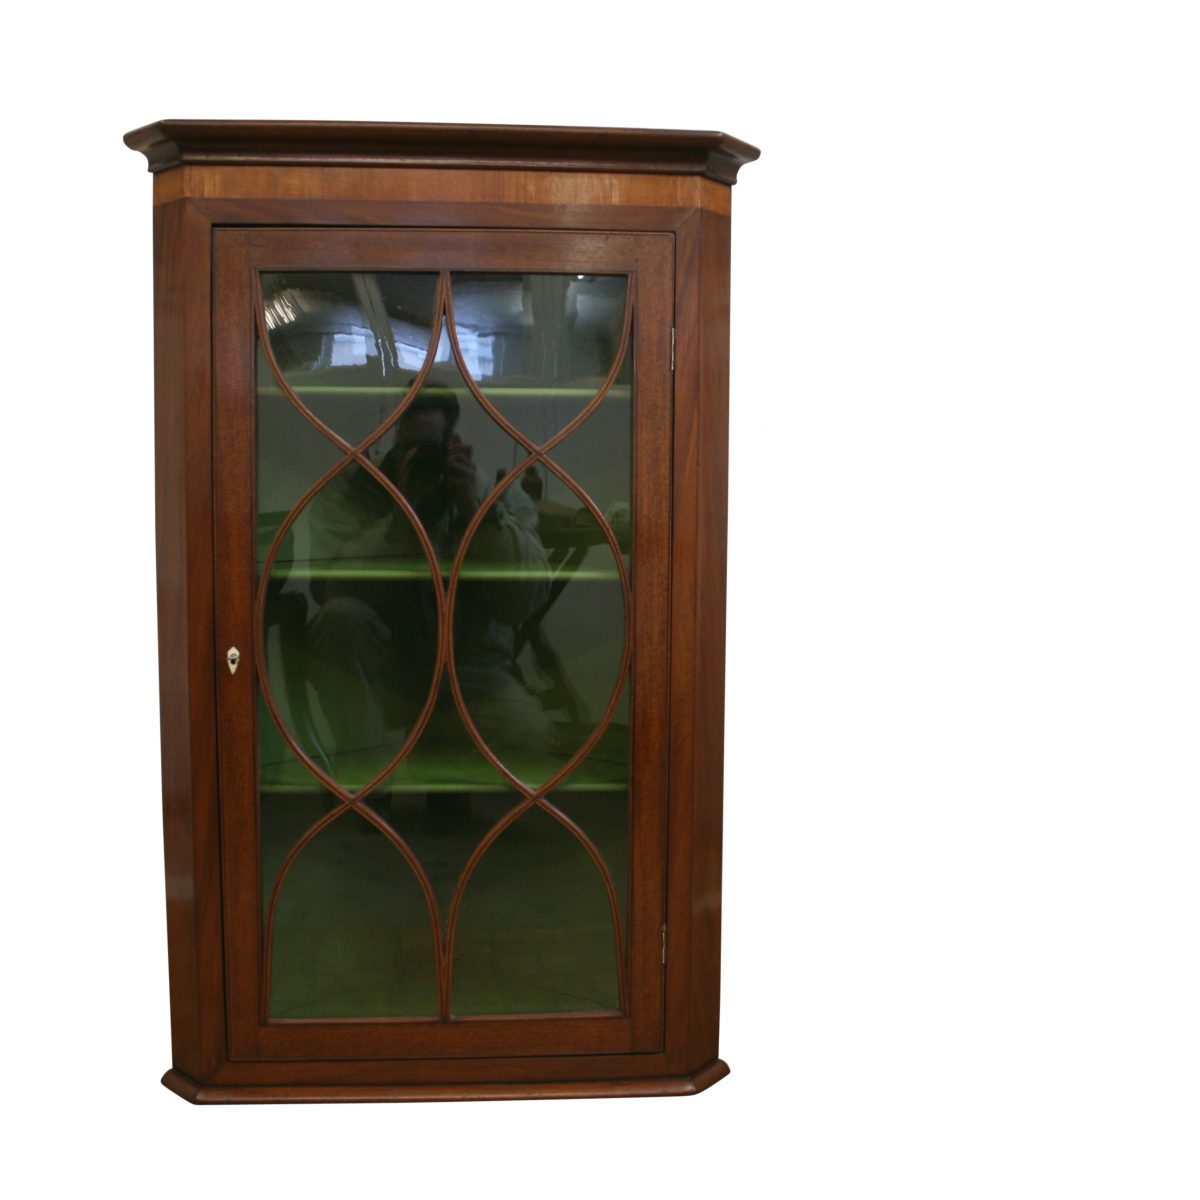 furnishings corner cabinets cabinet display hutch curio wall for post mounted china hanging rosewood related oriental